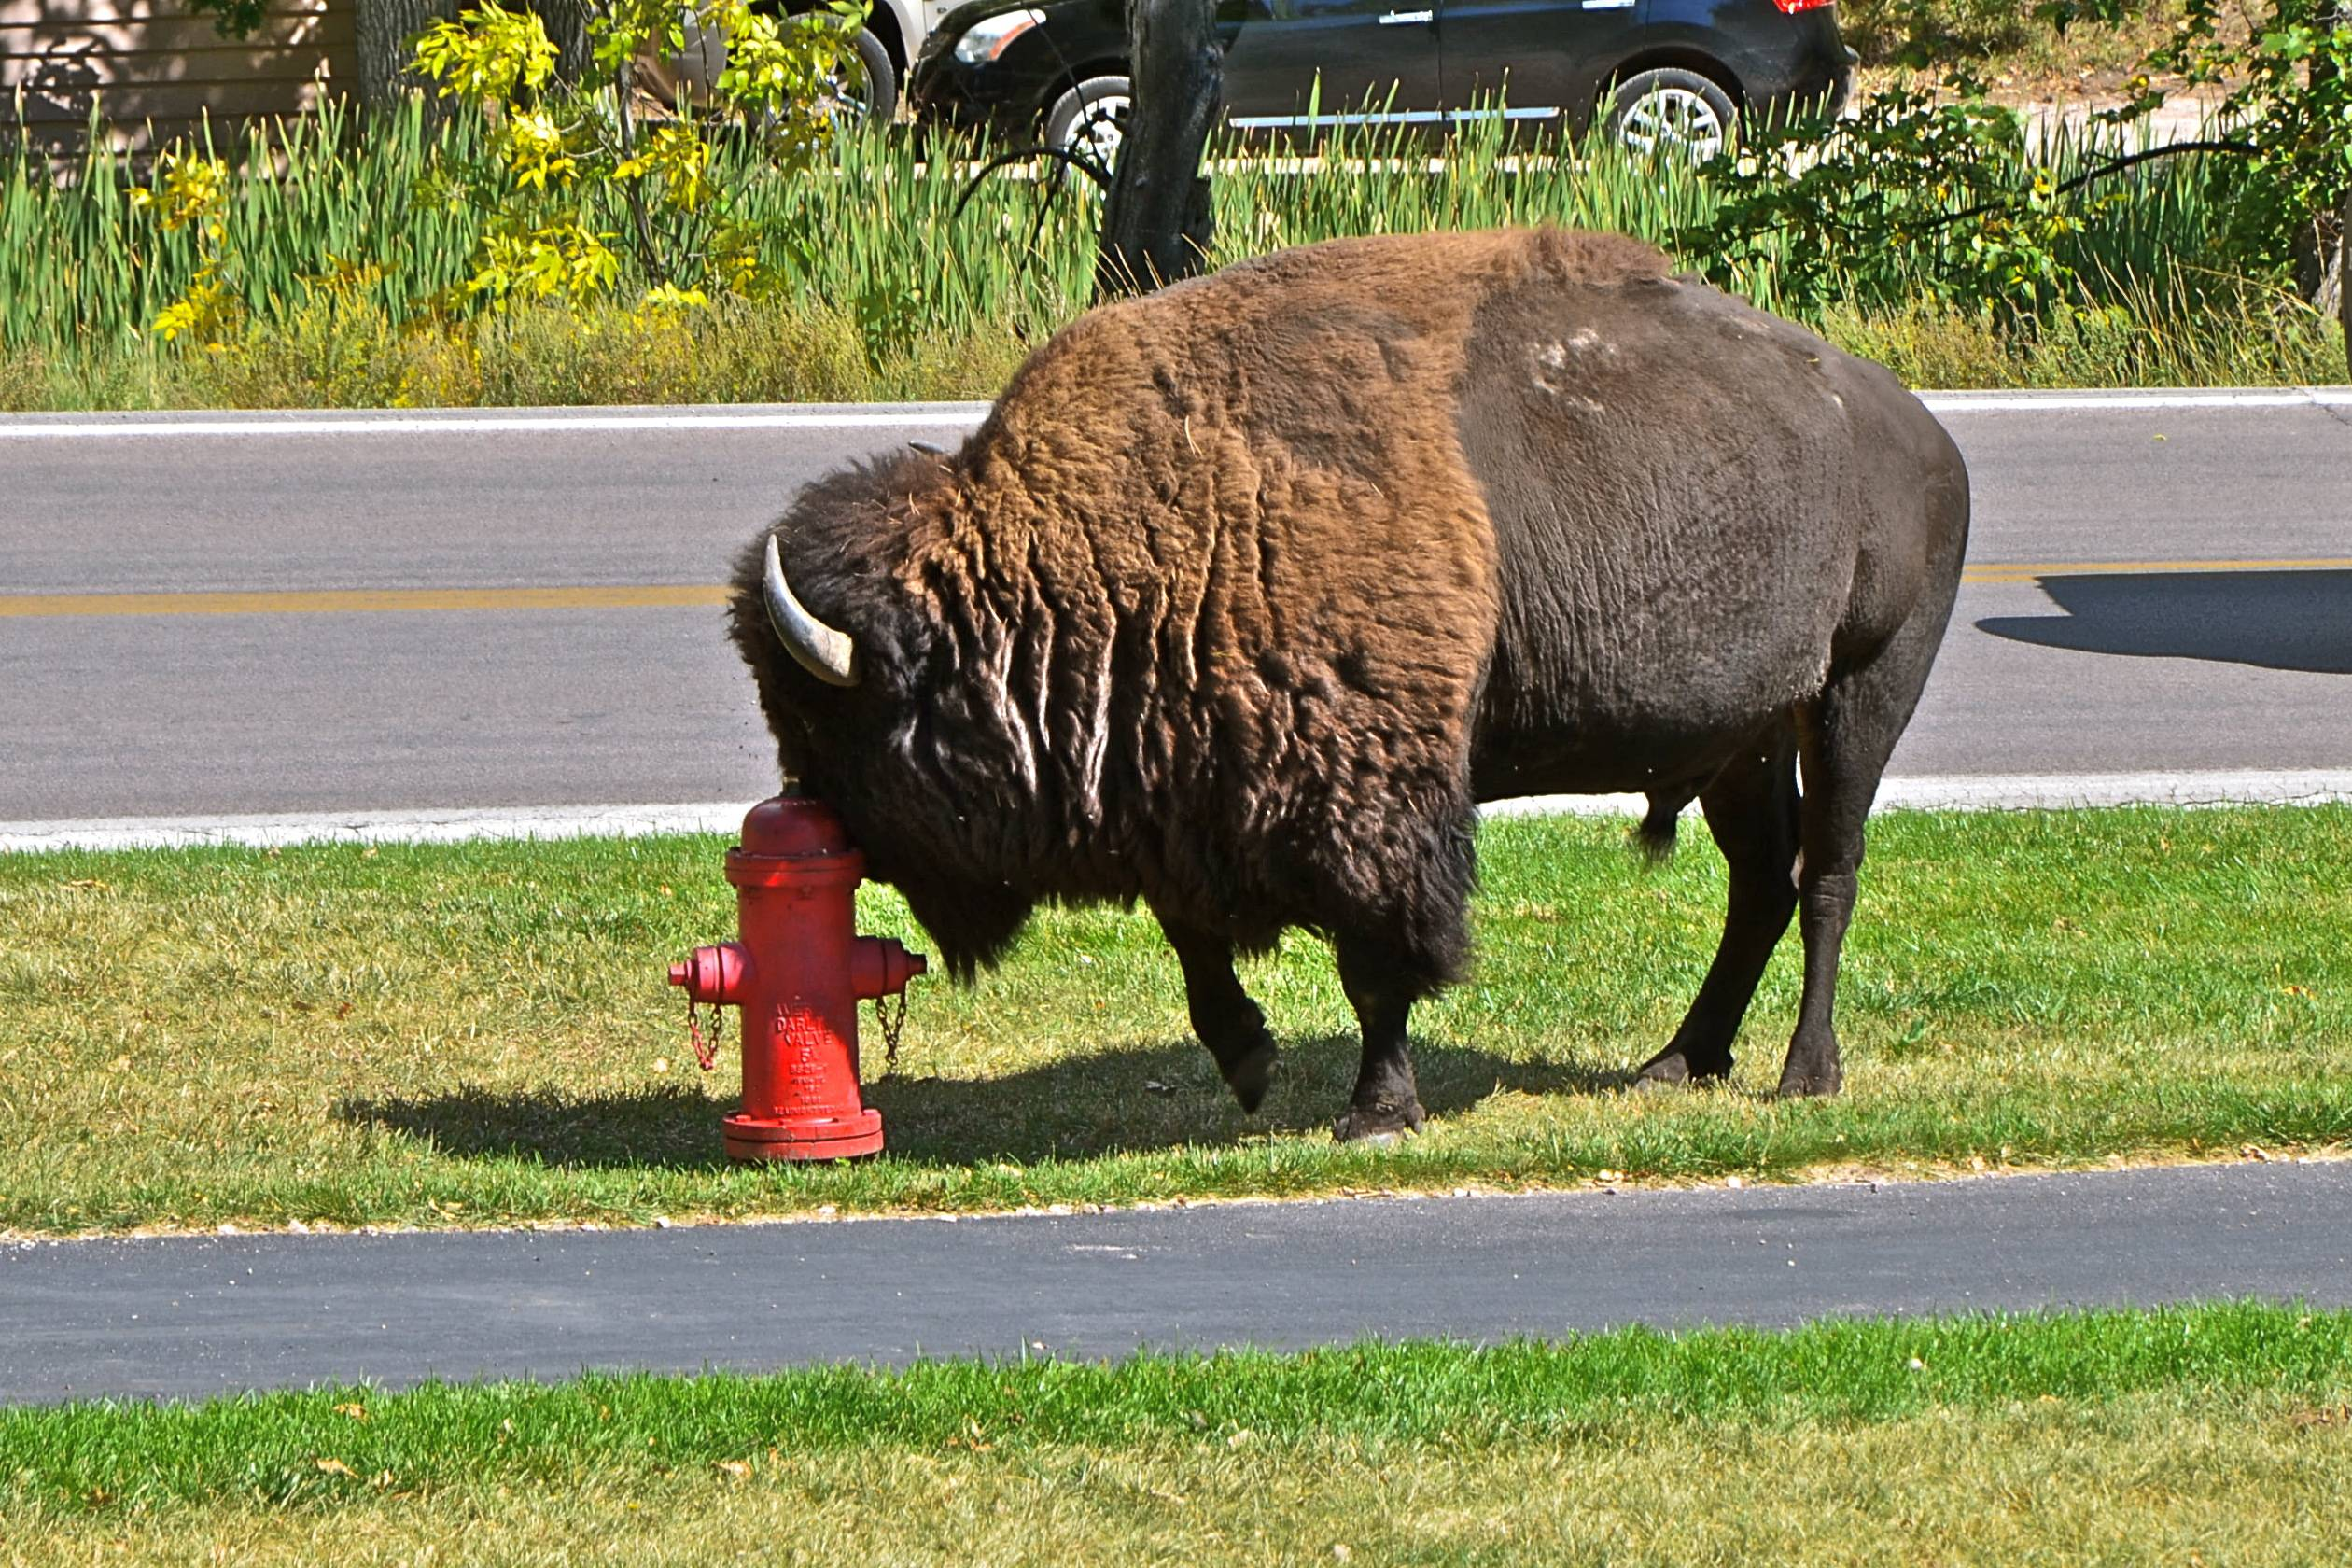 While sitting on the porch of the Game Lodge in Custer State Park in South Dakota this bison walked onto the lawn and used the hydrant to scratch his head. He then went next door to check out park personal setting up an outdoor wedding. Must not have been interesting because he just continued walking up the road.